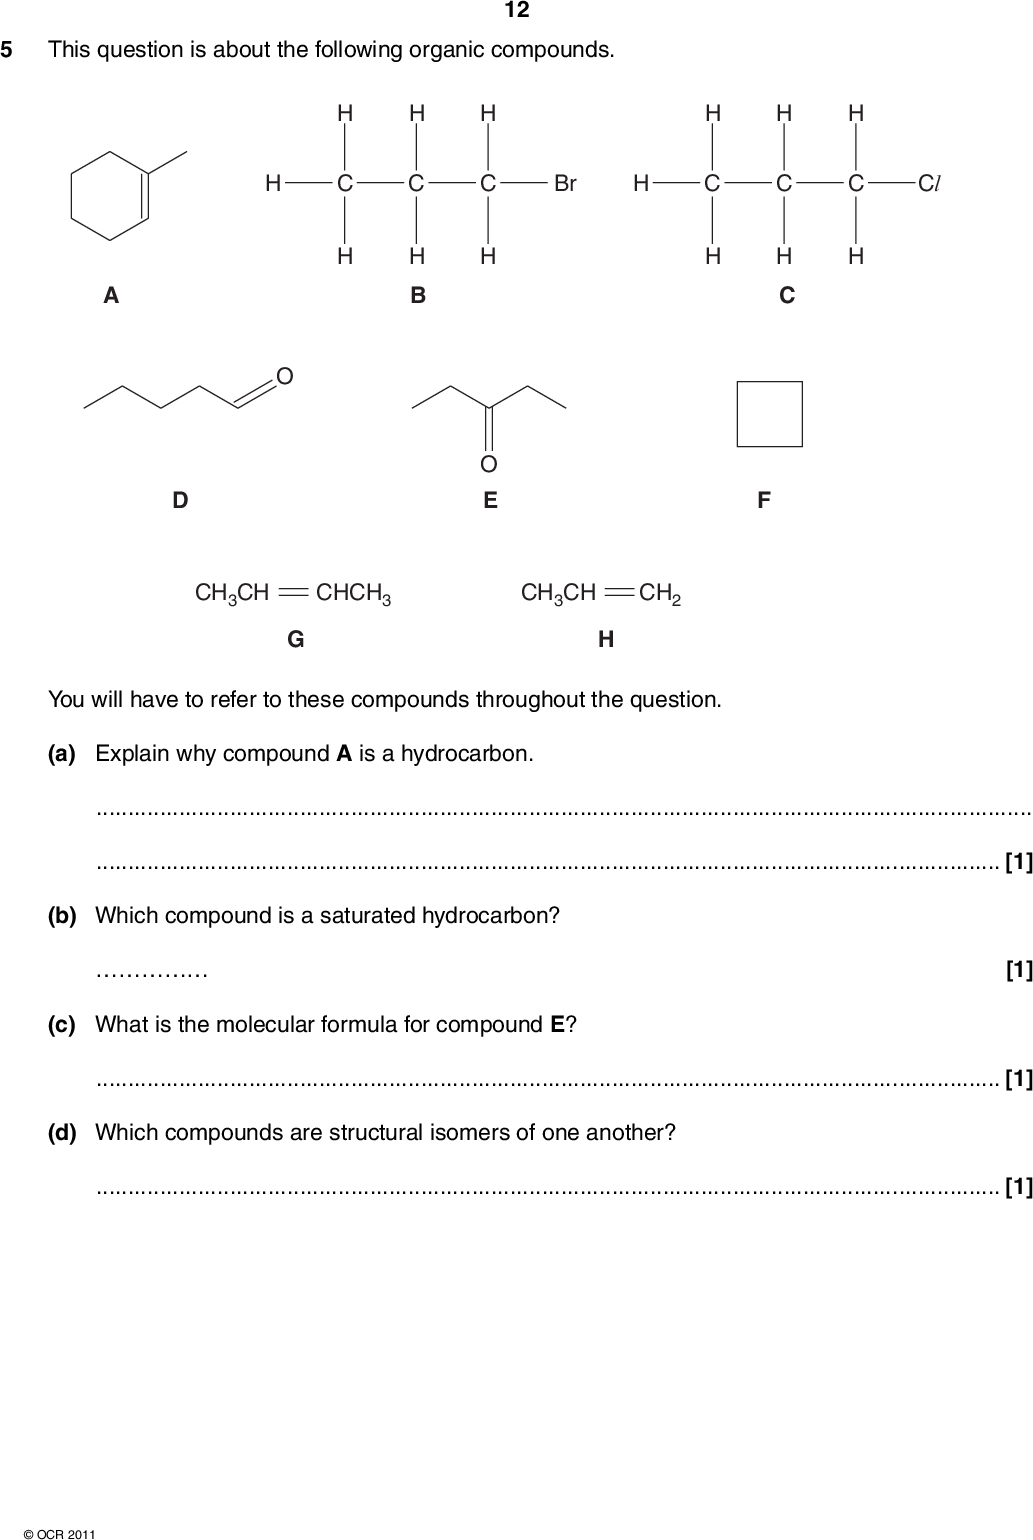 This question is about the following organic compounds. 12 H B O E Br Cl H C CH3CH CHCH3 CH3CH CH2 You will have to refer to these compounds throughout the question. (a) Explain why compound A is a hydrocarbon.[1] (b) Which compound is a saturated hydrocarbon?[1] (c) What is the molecular formula for compound E?[1] (d) Which compounds are structural isomers of one another?[1]OCR 2011<br />  (e) In compound G, there are different shapes around different carbon atoms. (i) State and explain the shape around carbon atom number 1 in compound G. 13[2] (ii) State the shape around carbon atom number 2 in compound G.[1] (f) (i) Which compound shows E/Z isomerism?[1] (ii) Explain why some molecules show E/Z isomerism.[2] TURN OVER FOR PART (g)OCR 2011 Turn over<br />  (g) Compounds B and C are halogenoalkanes. Both compounds can be hydrolysed with aqueous potassium hydroxide, KOH(aq). 14 H B Br H C Cl Describe and explain the hydrolysis of B and C. In your answer, includeone equation including the structure of the organic product the reaction mechanism, using the curly arrow model, showing any relevant dipoles the type of bond fission that occurs the reasons for the difference in the rate of hydrolysis. Your answer needs to be clear and well organised using the correct terminology.OCR 2011<br />  15[10] TURN OVER FOR PART (h)OCR 2011 Turn over<br />  (h) Compound A is 1-methylcyclohex-1-ene. 16 Compound A reacts with H2 to give one product and with HBr to give two products. Draw the structures of the products of these reactions. product of reaction of H2 with A two products of reaction of HBr with A [3] [Total: 23]OCR 2011<br />  17 BLANK PAGE PLEASE DO NOT WRITE ON THIS PAGE TURN OVER FOR QUESTIONS 6 AND 7OCR 2011 Turn over<br />